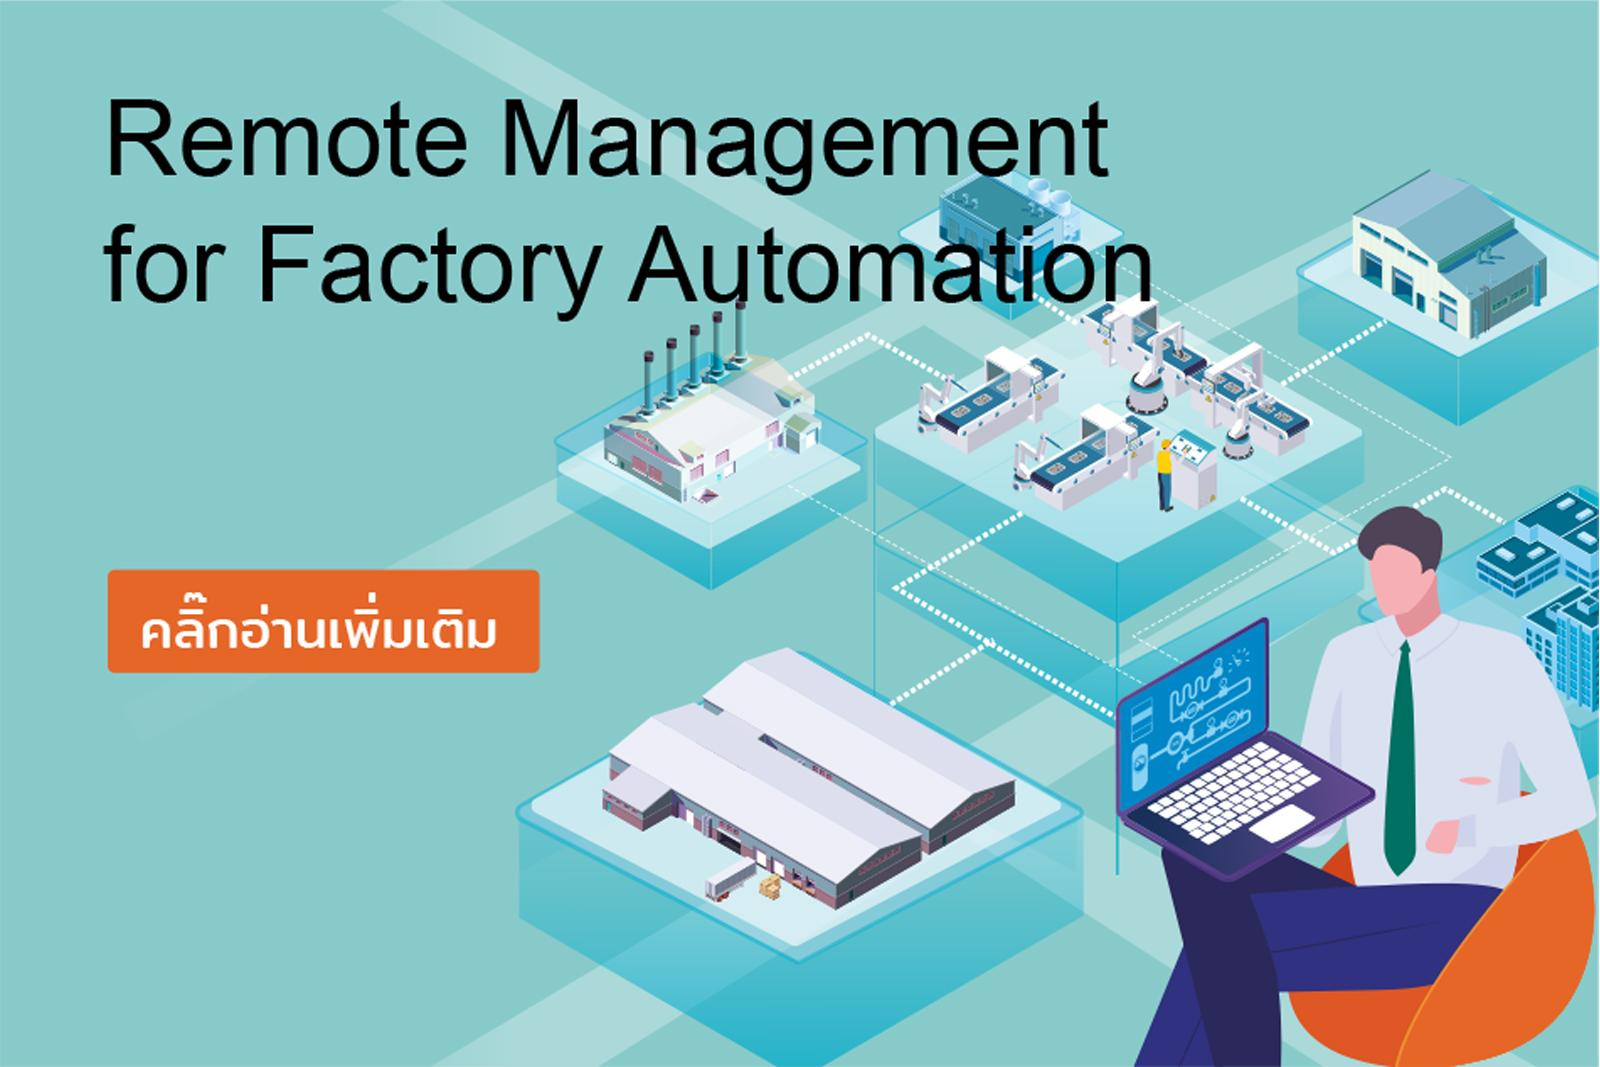 Remote Management for Factory Automation